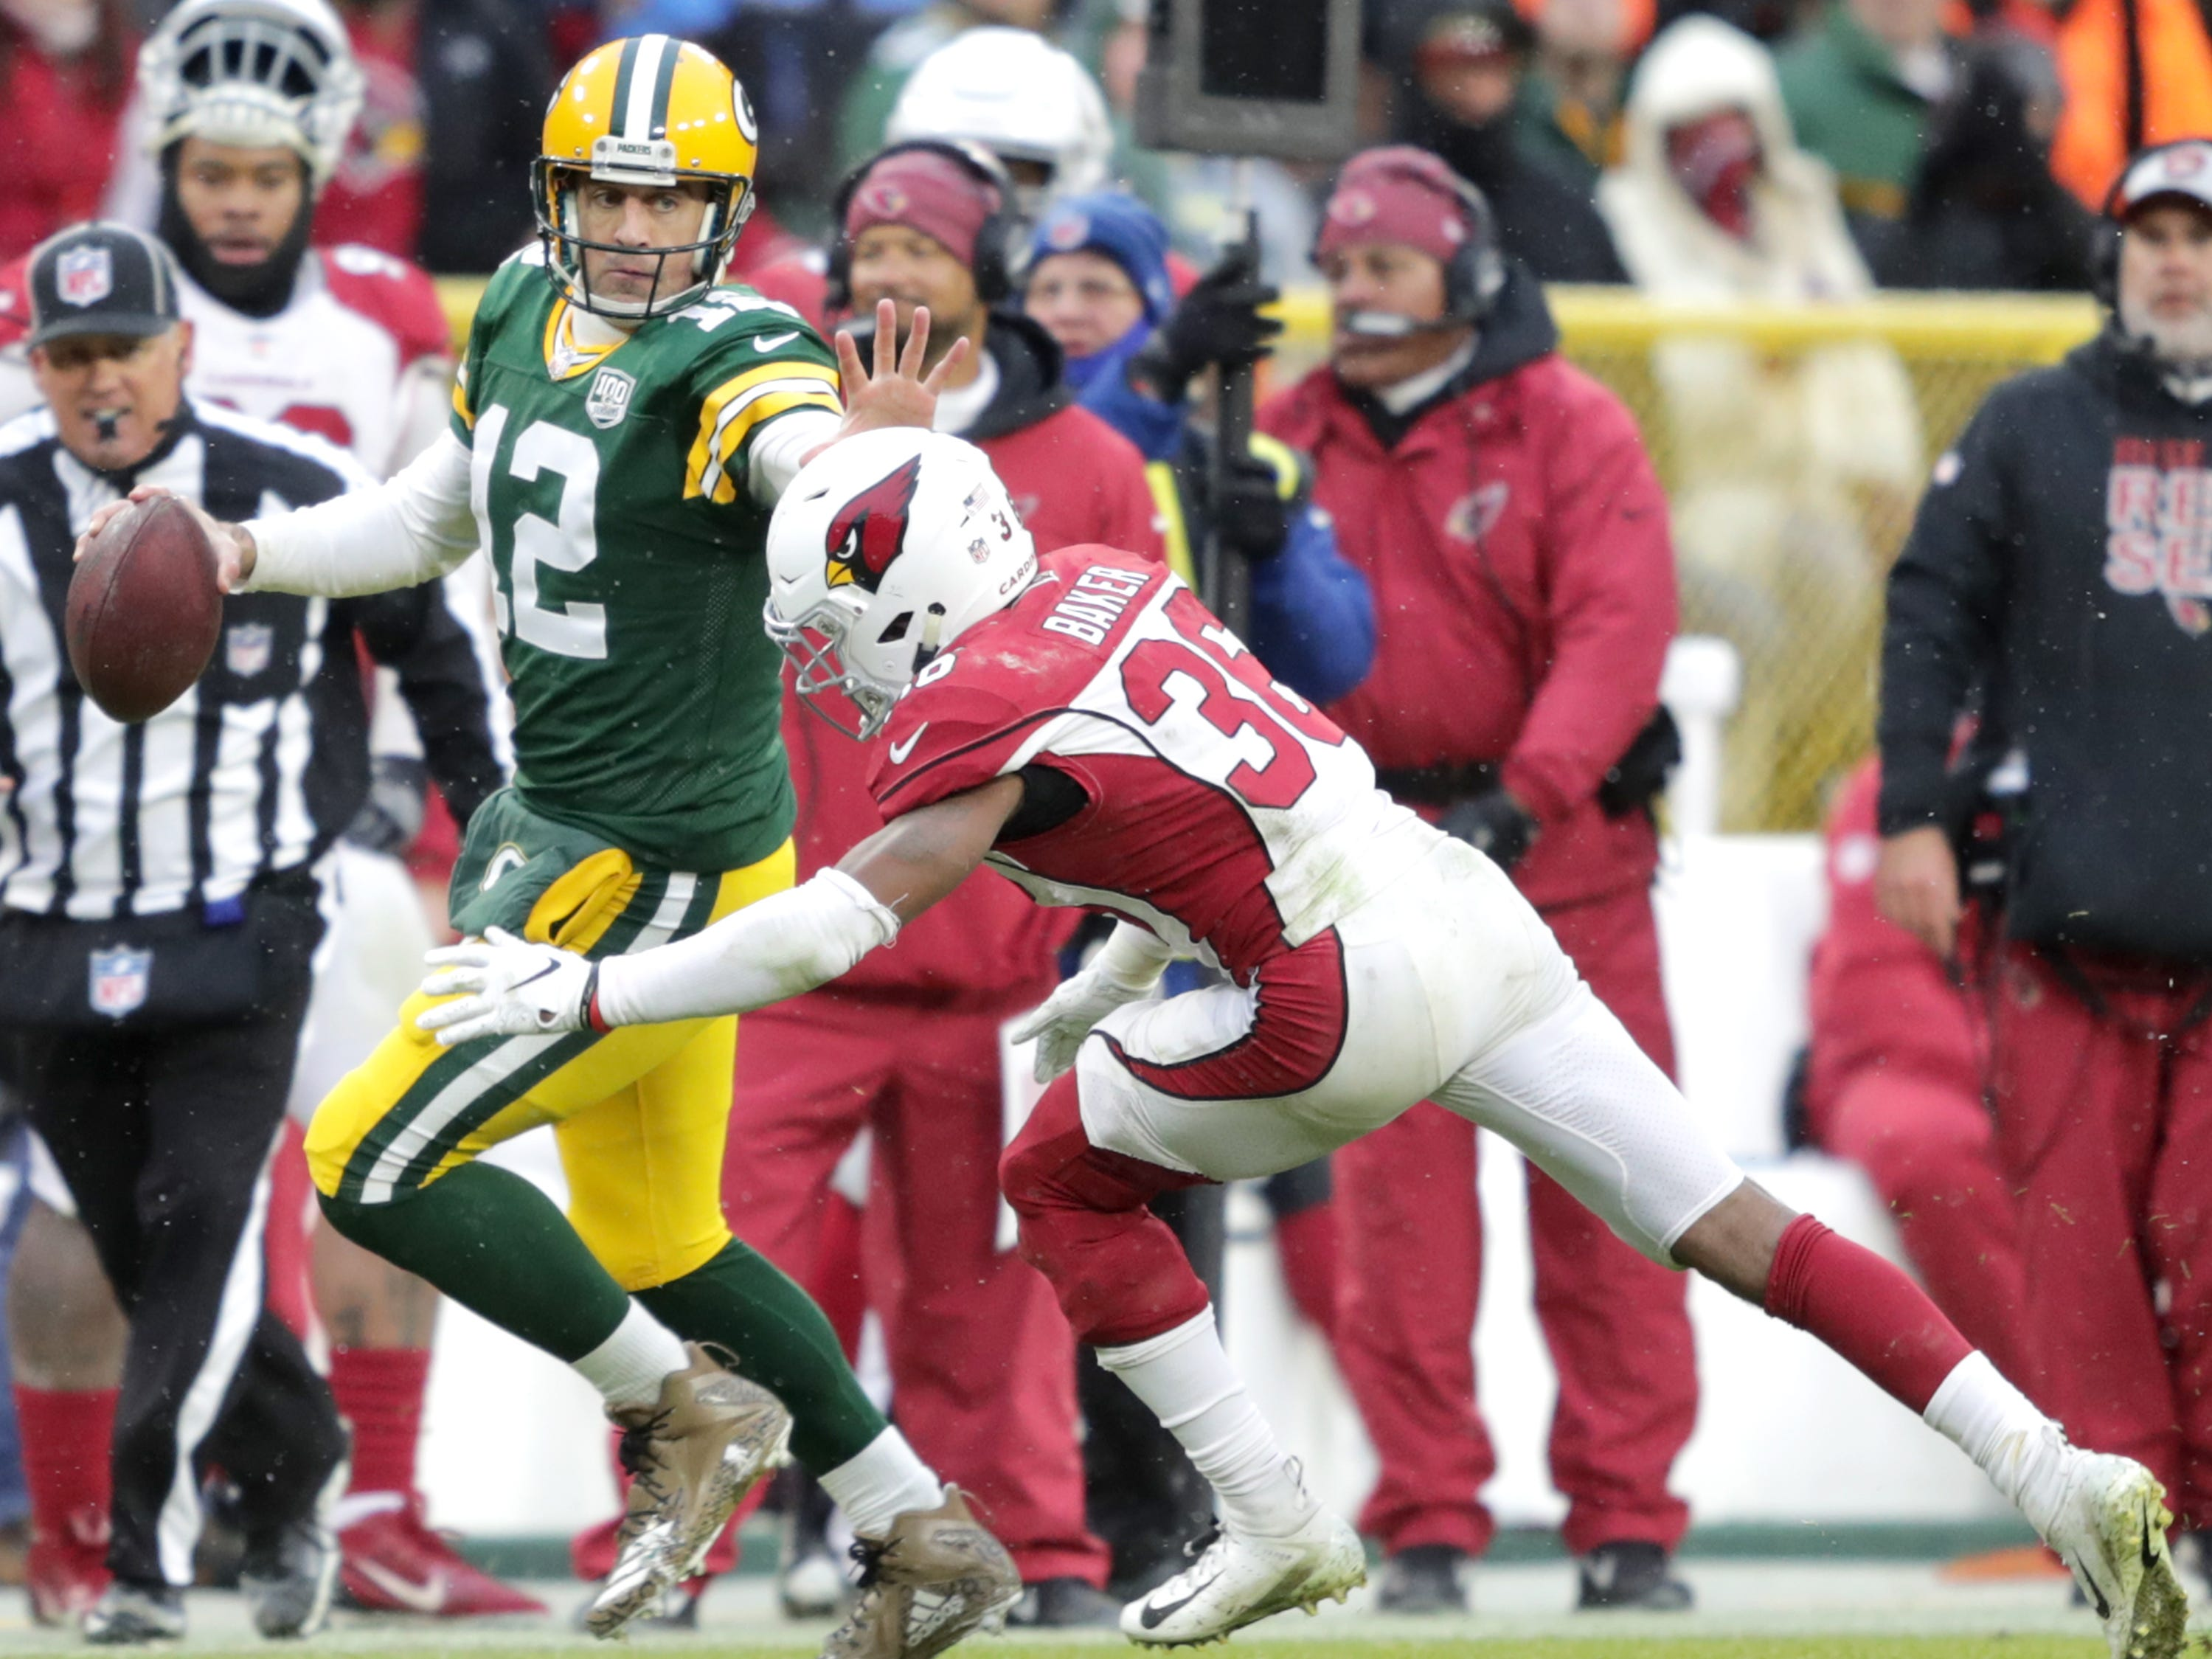 Green Bay Packers quarterback Aaron Rodgers rushes against Arizona Cardinals strong safety Budda Baker during their football game on Sunday, December 2, 2018, at Lambeau Field in Green Bay, Wis. Arizona defeated Green Bay 20 to 17. Wm. Glasheen/USA TODAY NETWORK-Wisconsin.